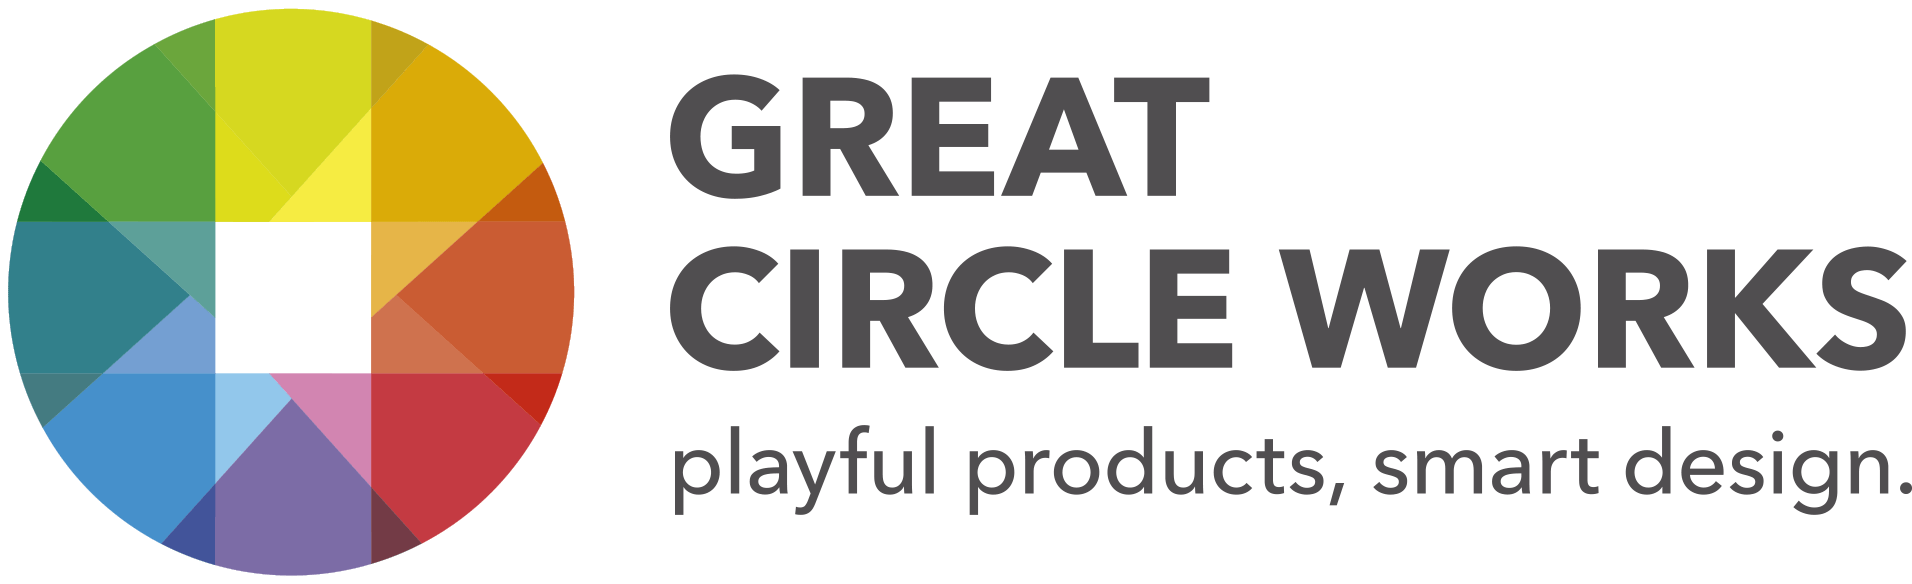 GREAT CIRCLE WORKS logo